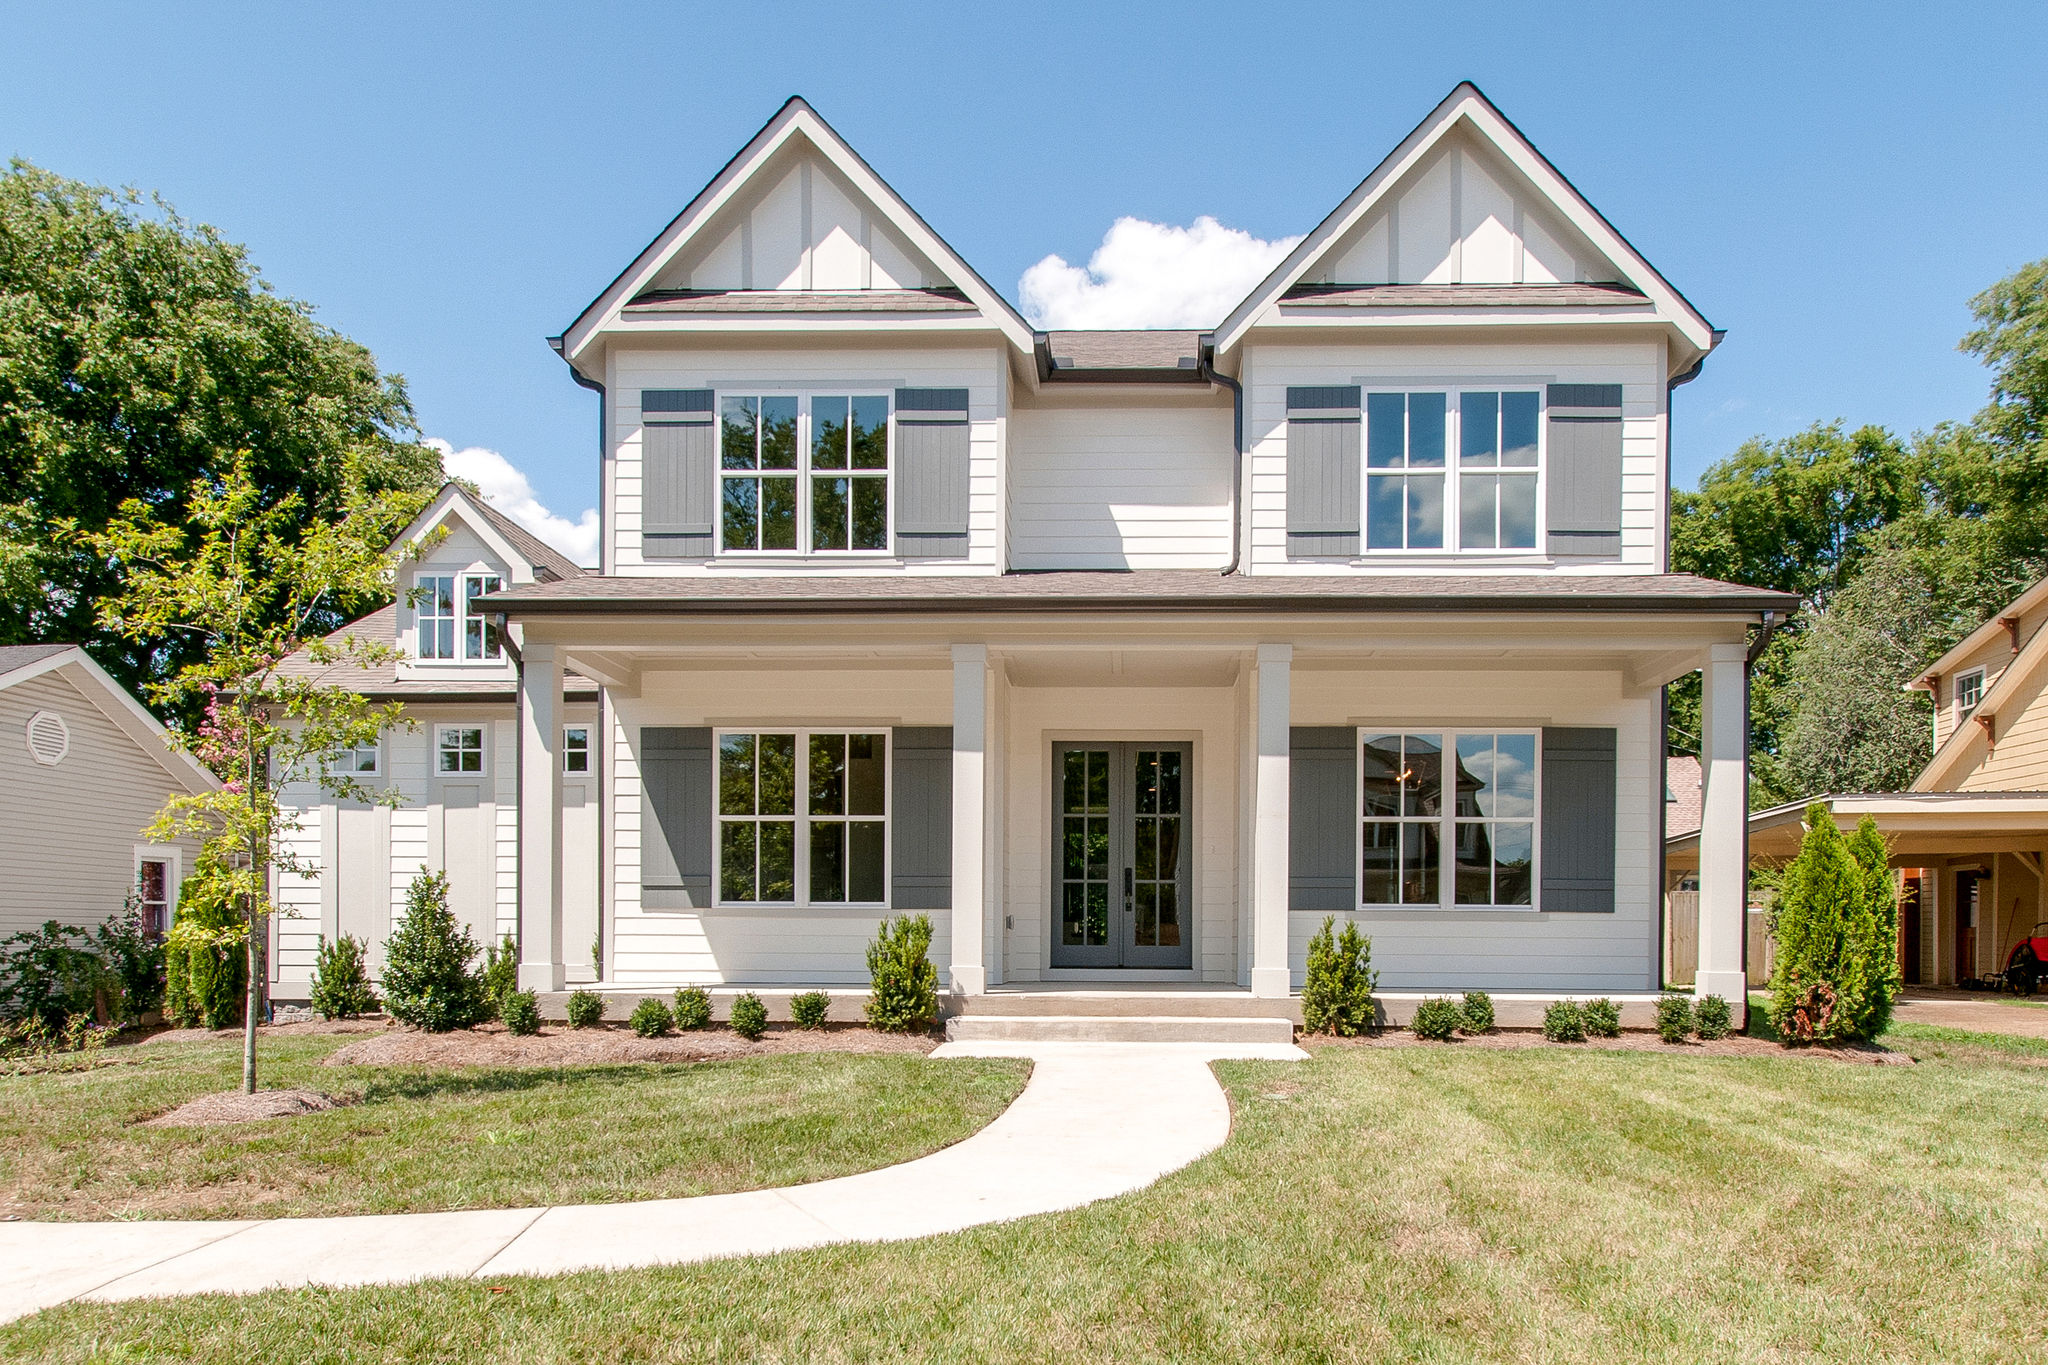 New Homes with landscape in Franklin, Brentwood, and Thompson Station TN with Custom Home Design